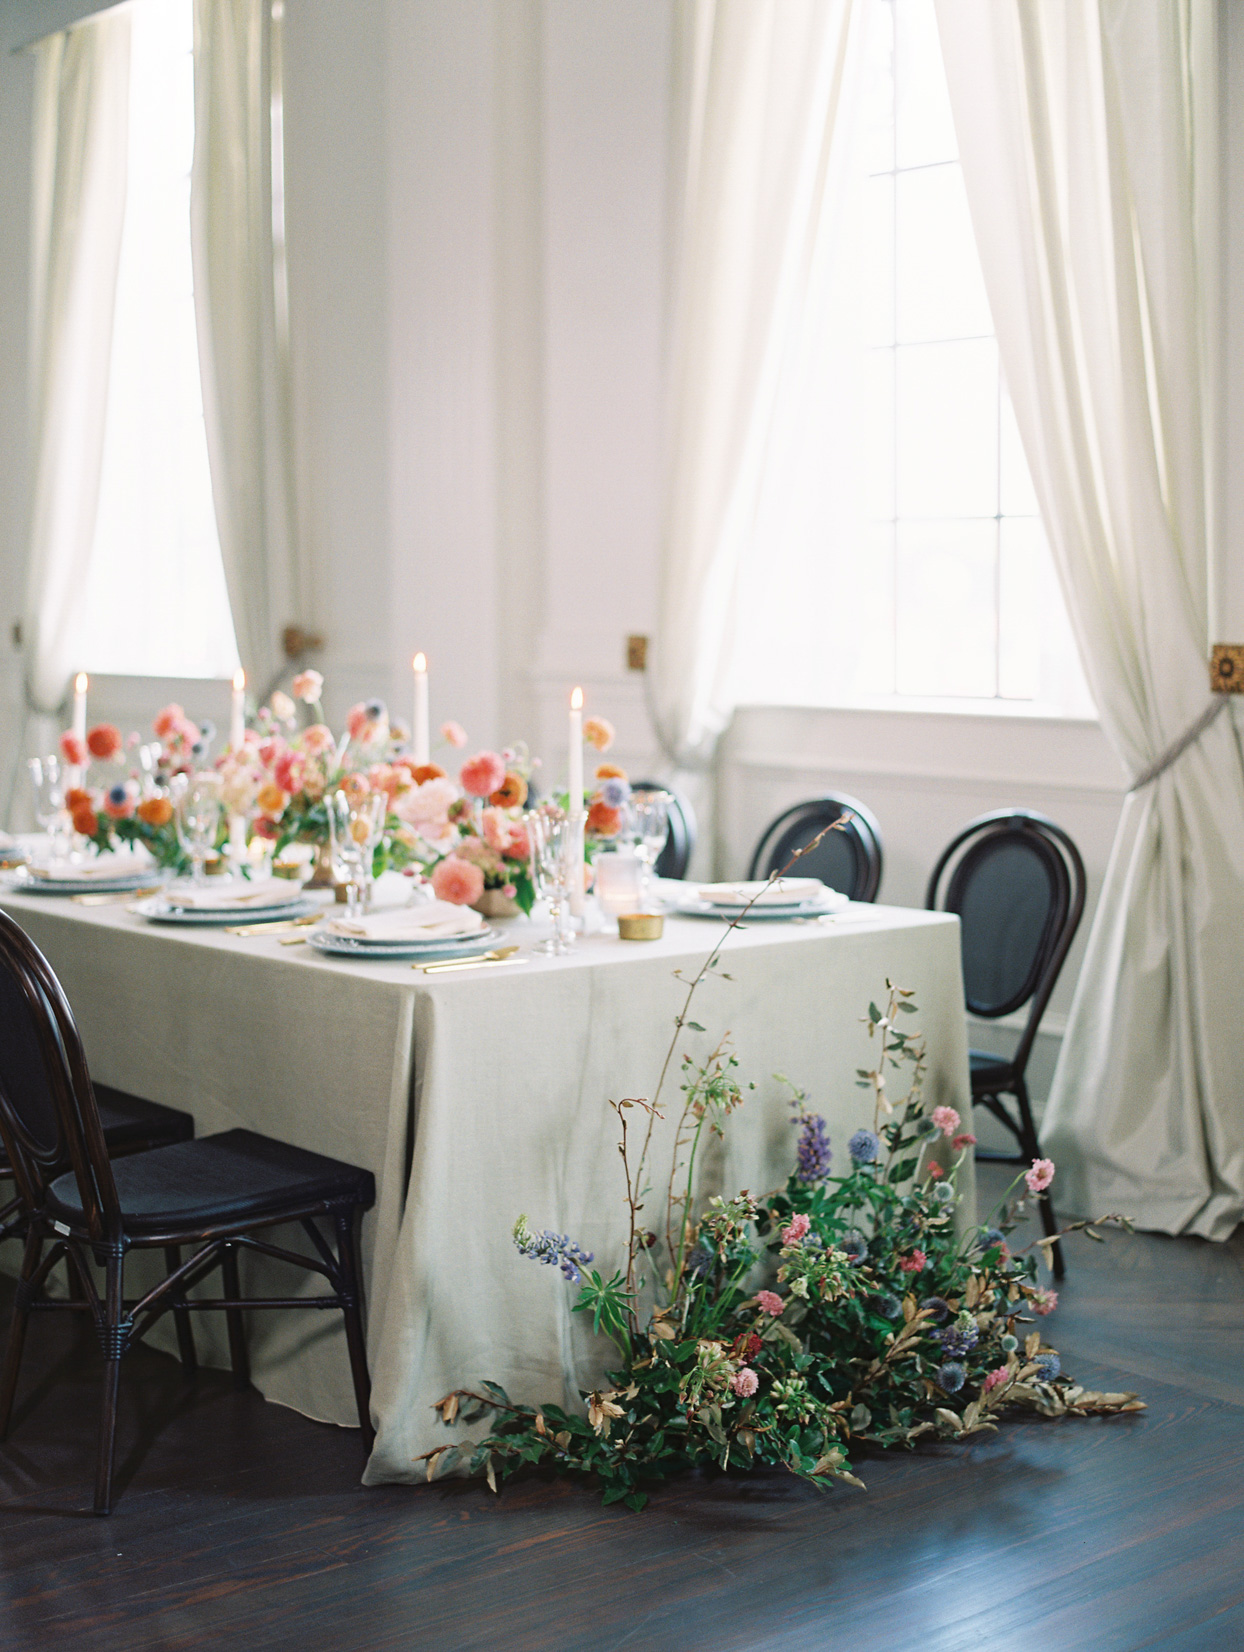 reception table with floral arrangements and candles